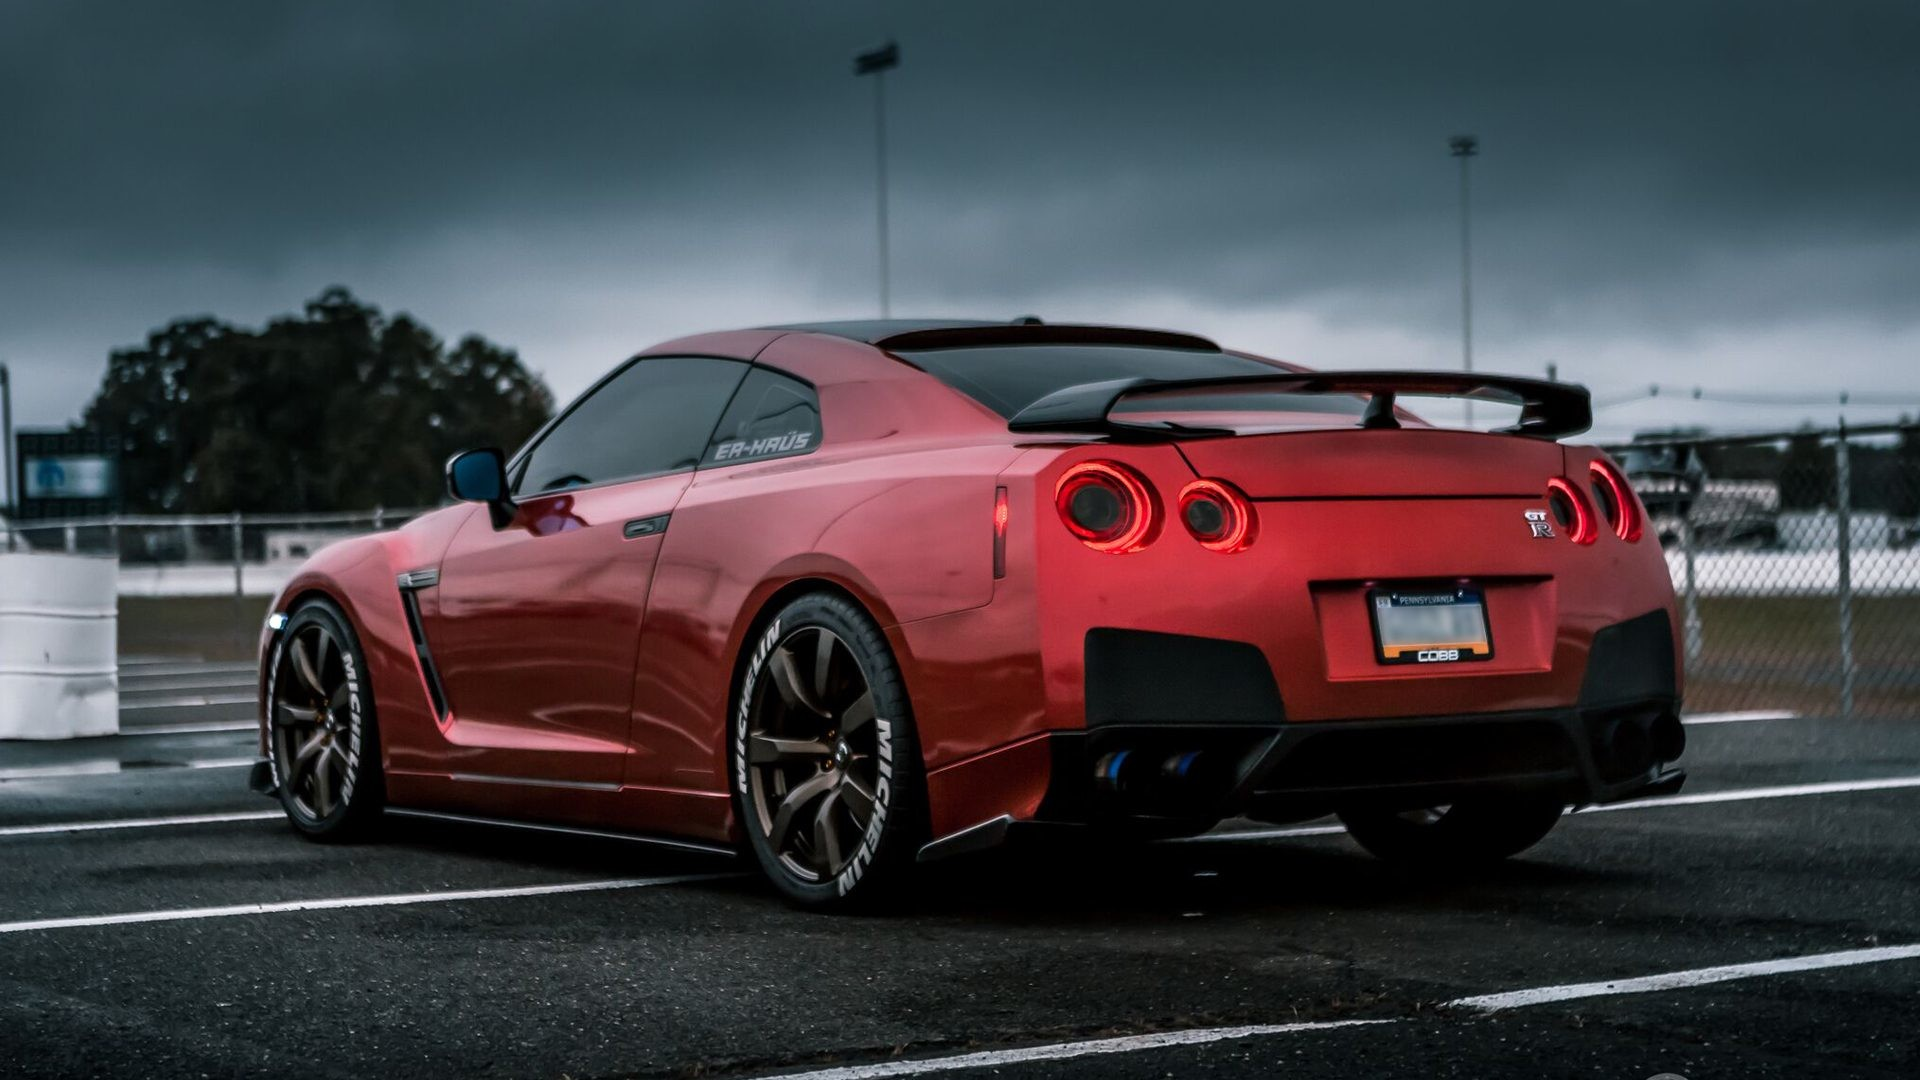 2560x1600 Nissan Gtr Logo Wallpaper Hd Nissan Gtr R35 6 Wallpaper Hd  2560x1600.